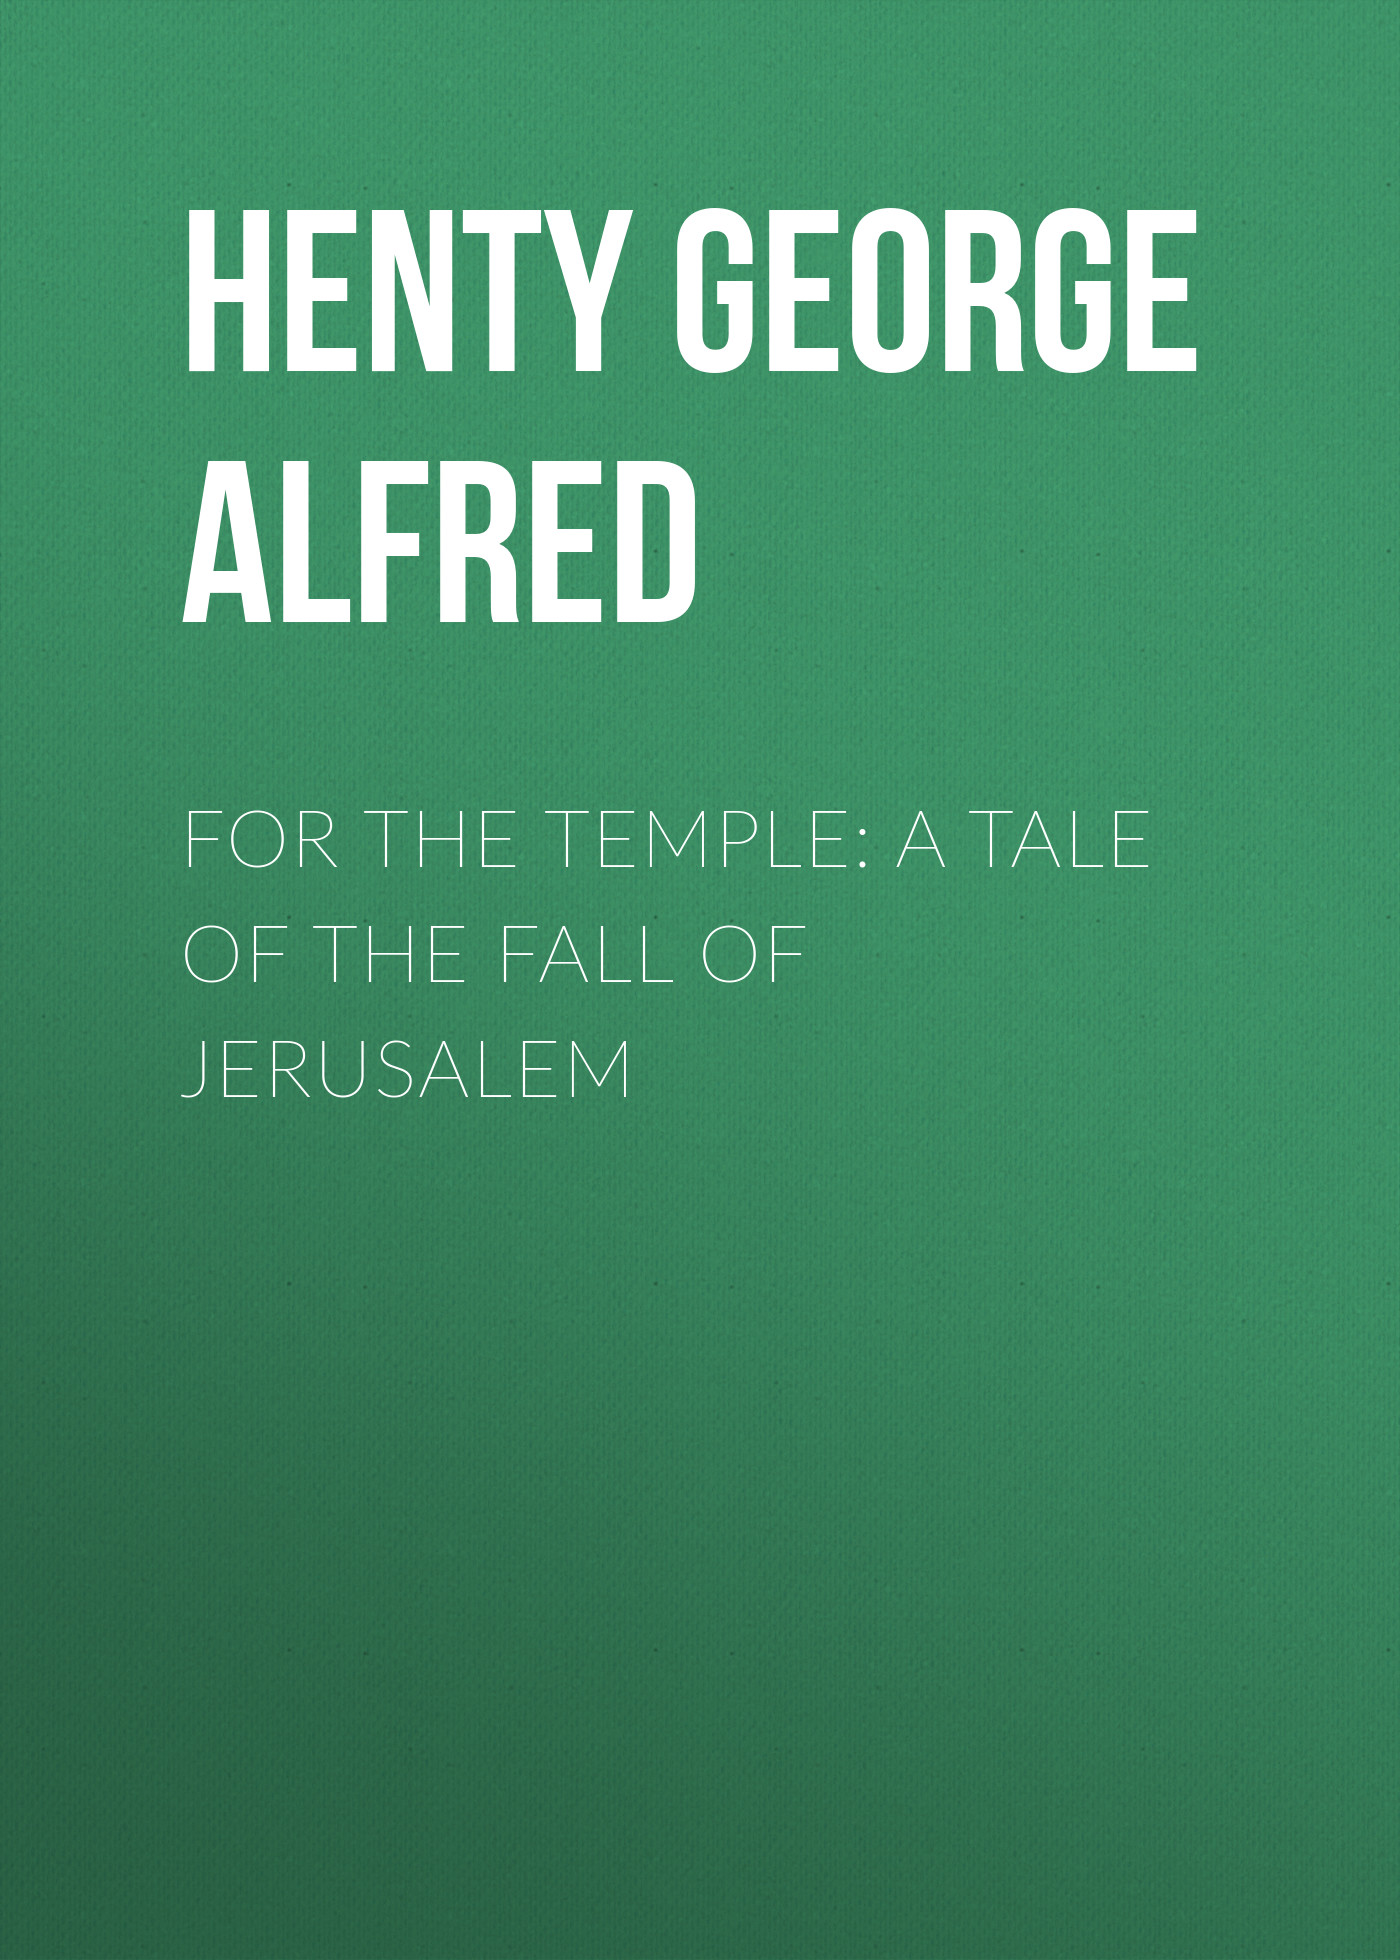 Henty George Alfred For the Temple: A Tale of the Fall of Jerusalem